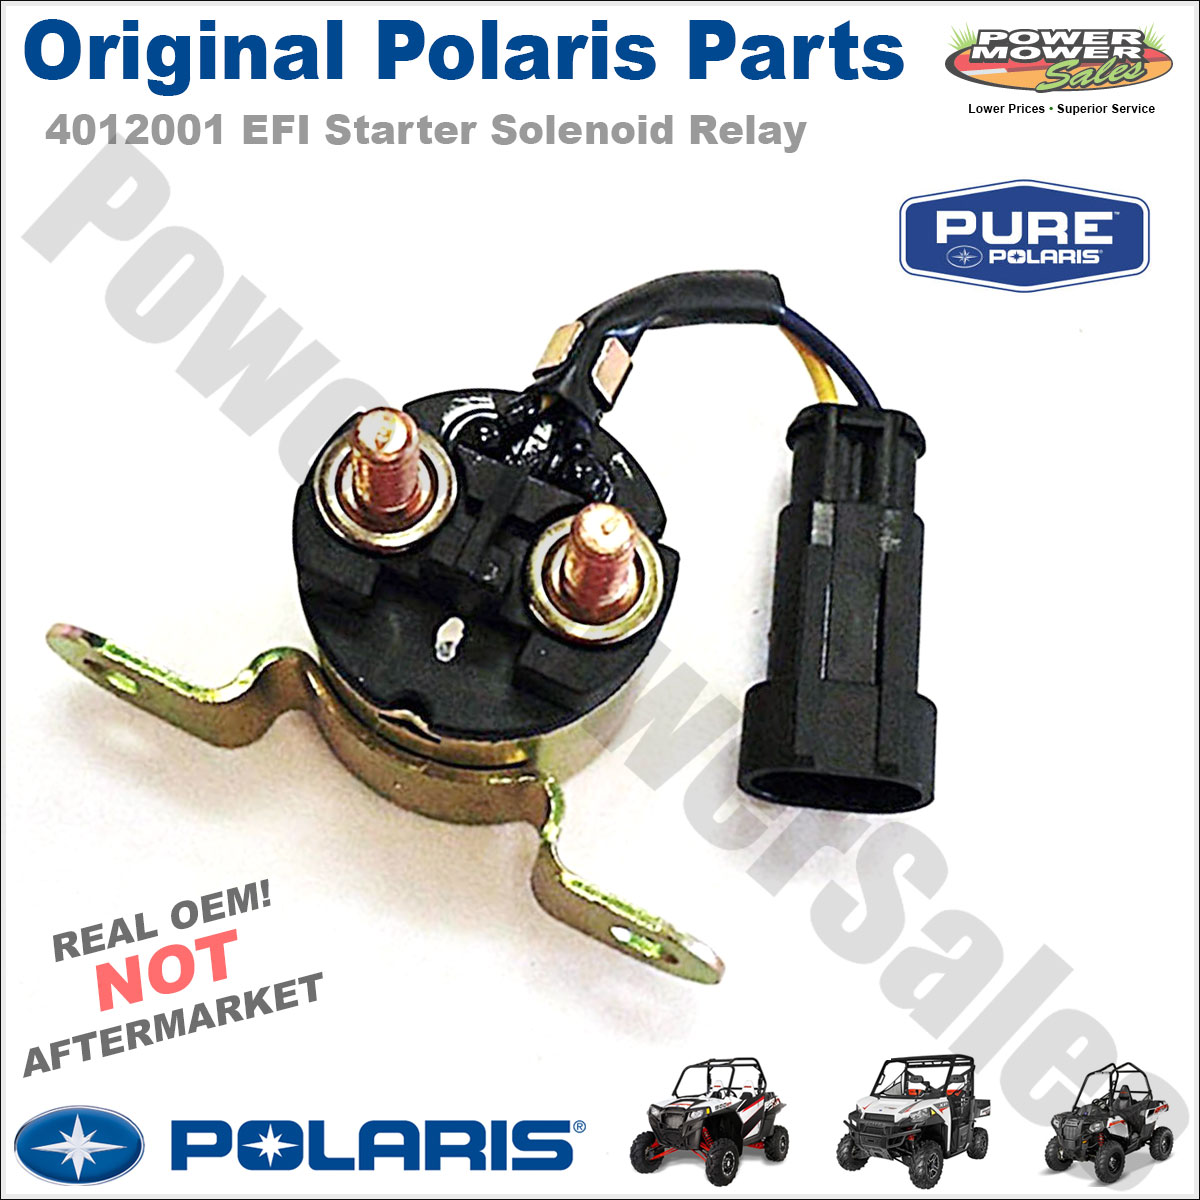 Details about 4012001 Polaris Starter Solenoid Relay 2010 - 2011 Ranger 400  500 800 HO Crew